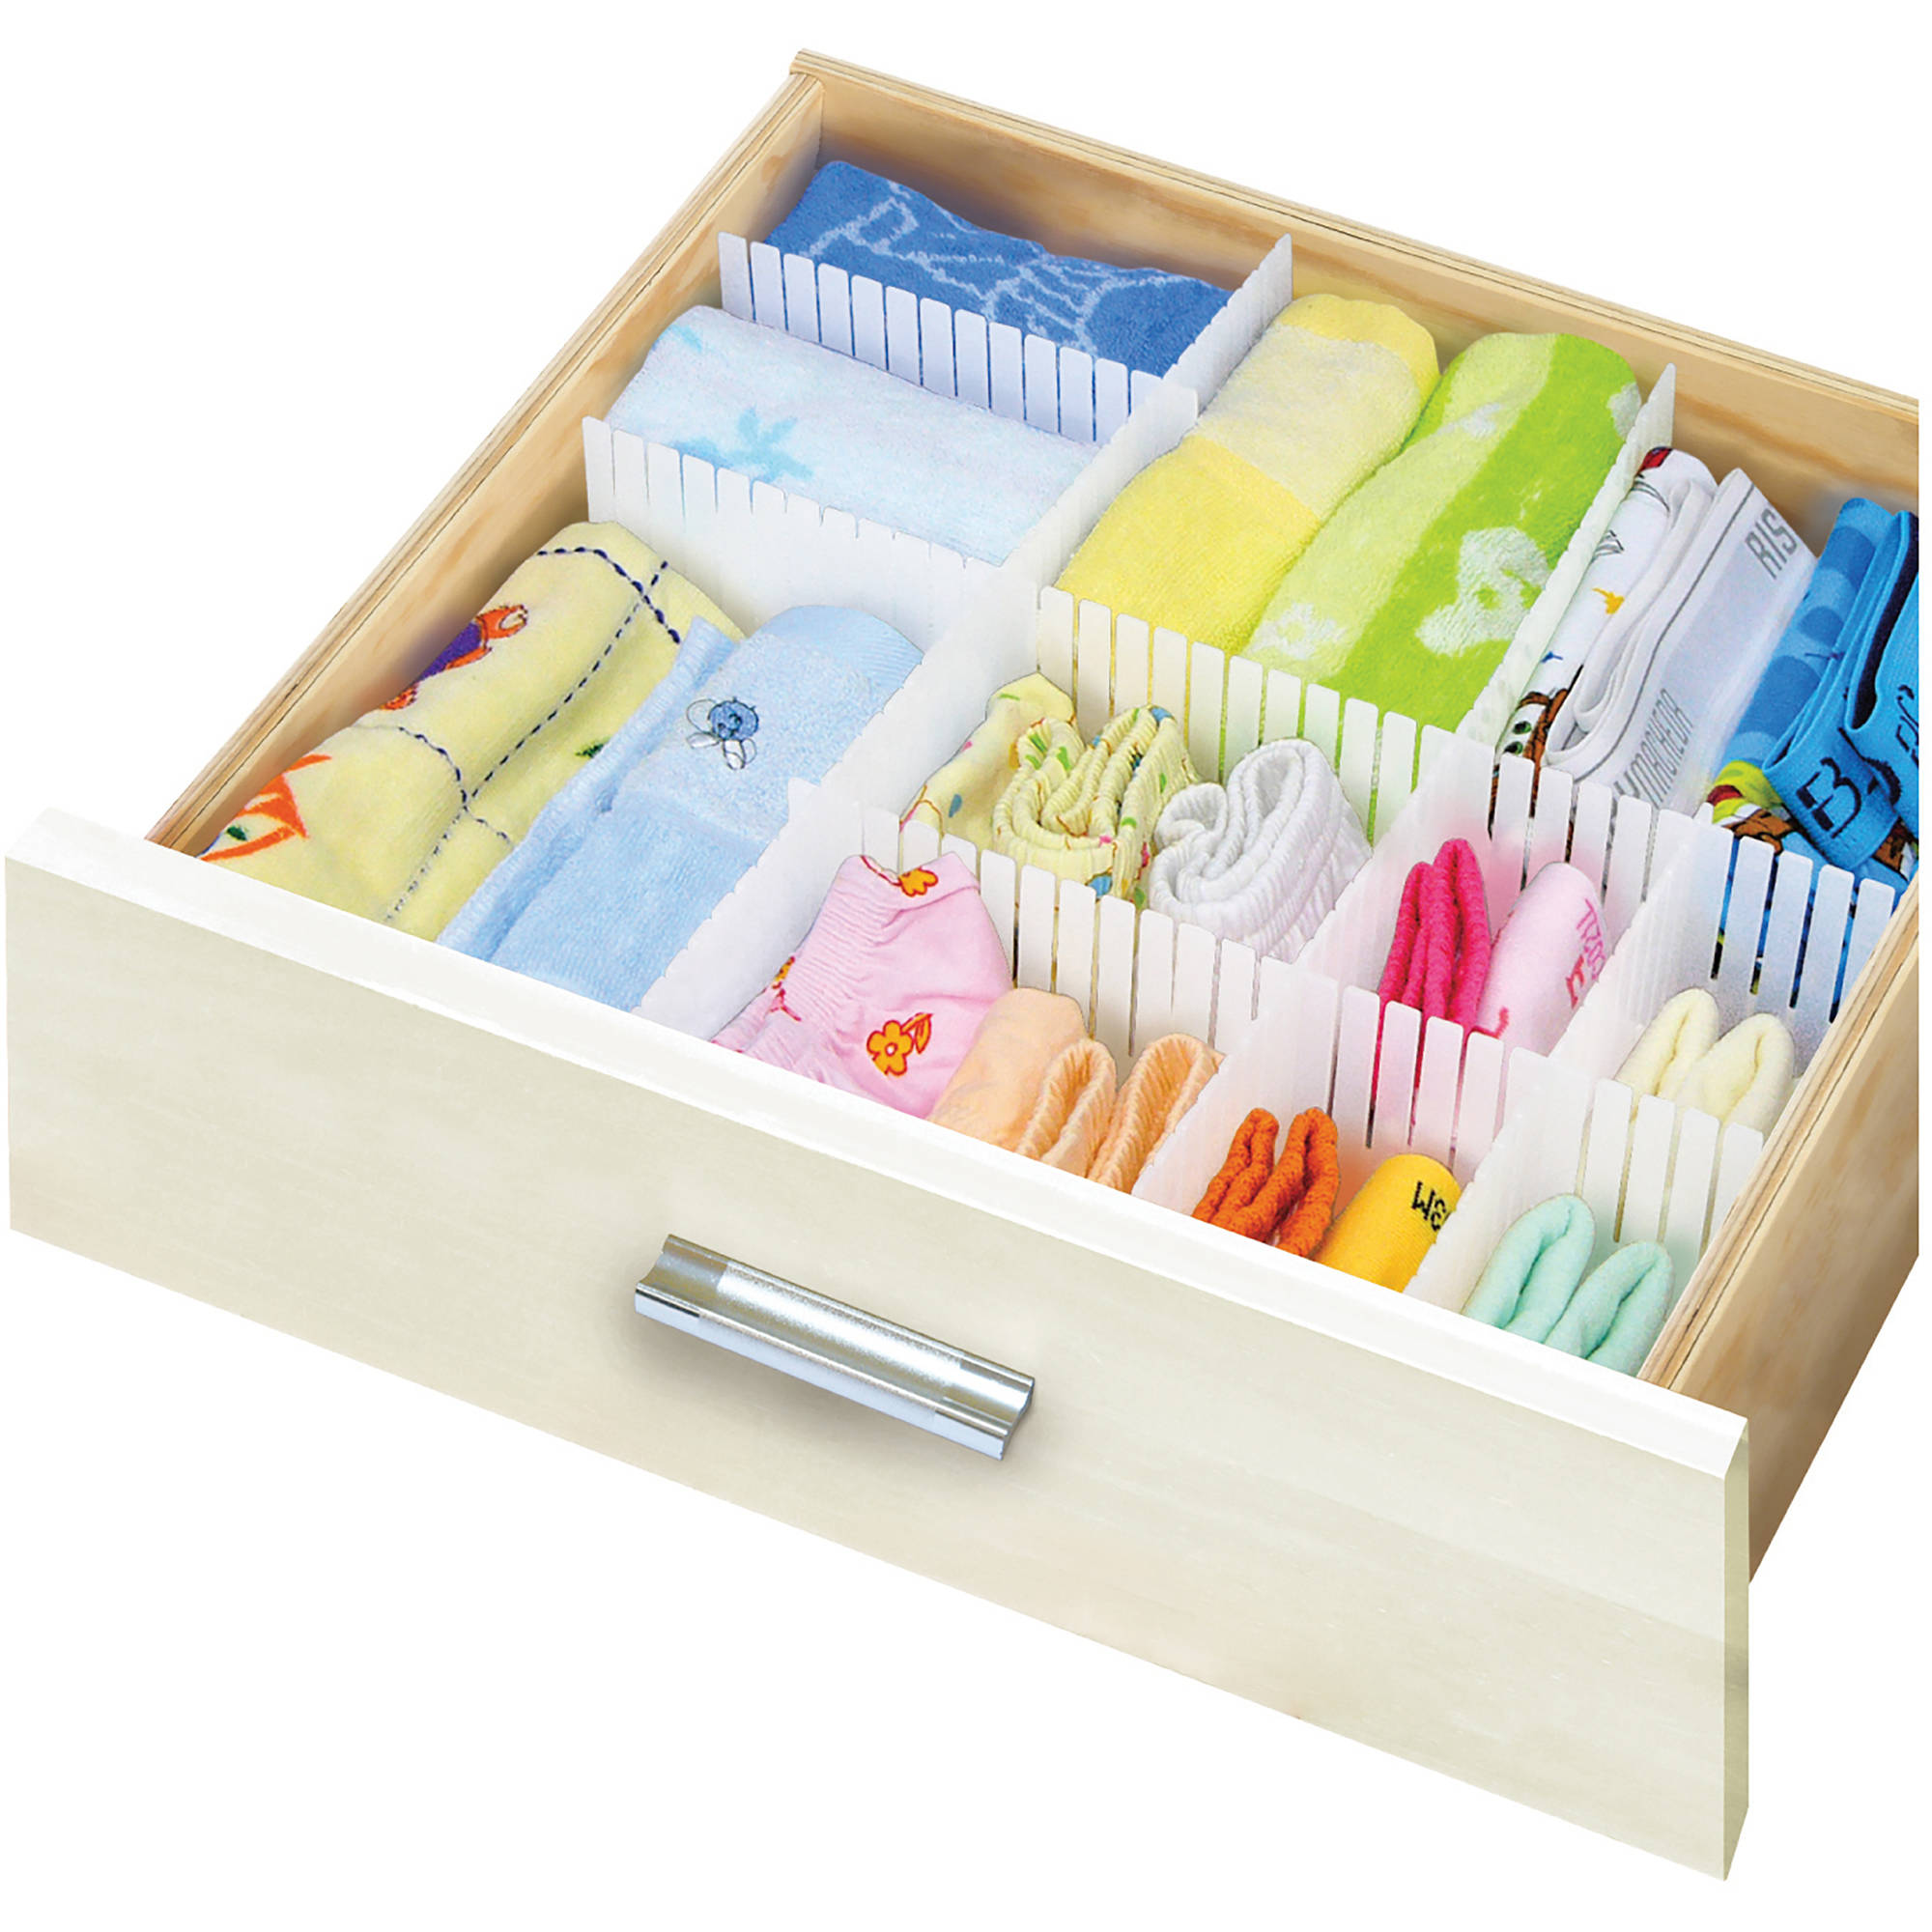 store dresser organizer the organizers drawers trays shopping bamboo drawer container